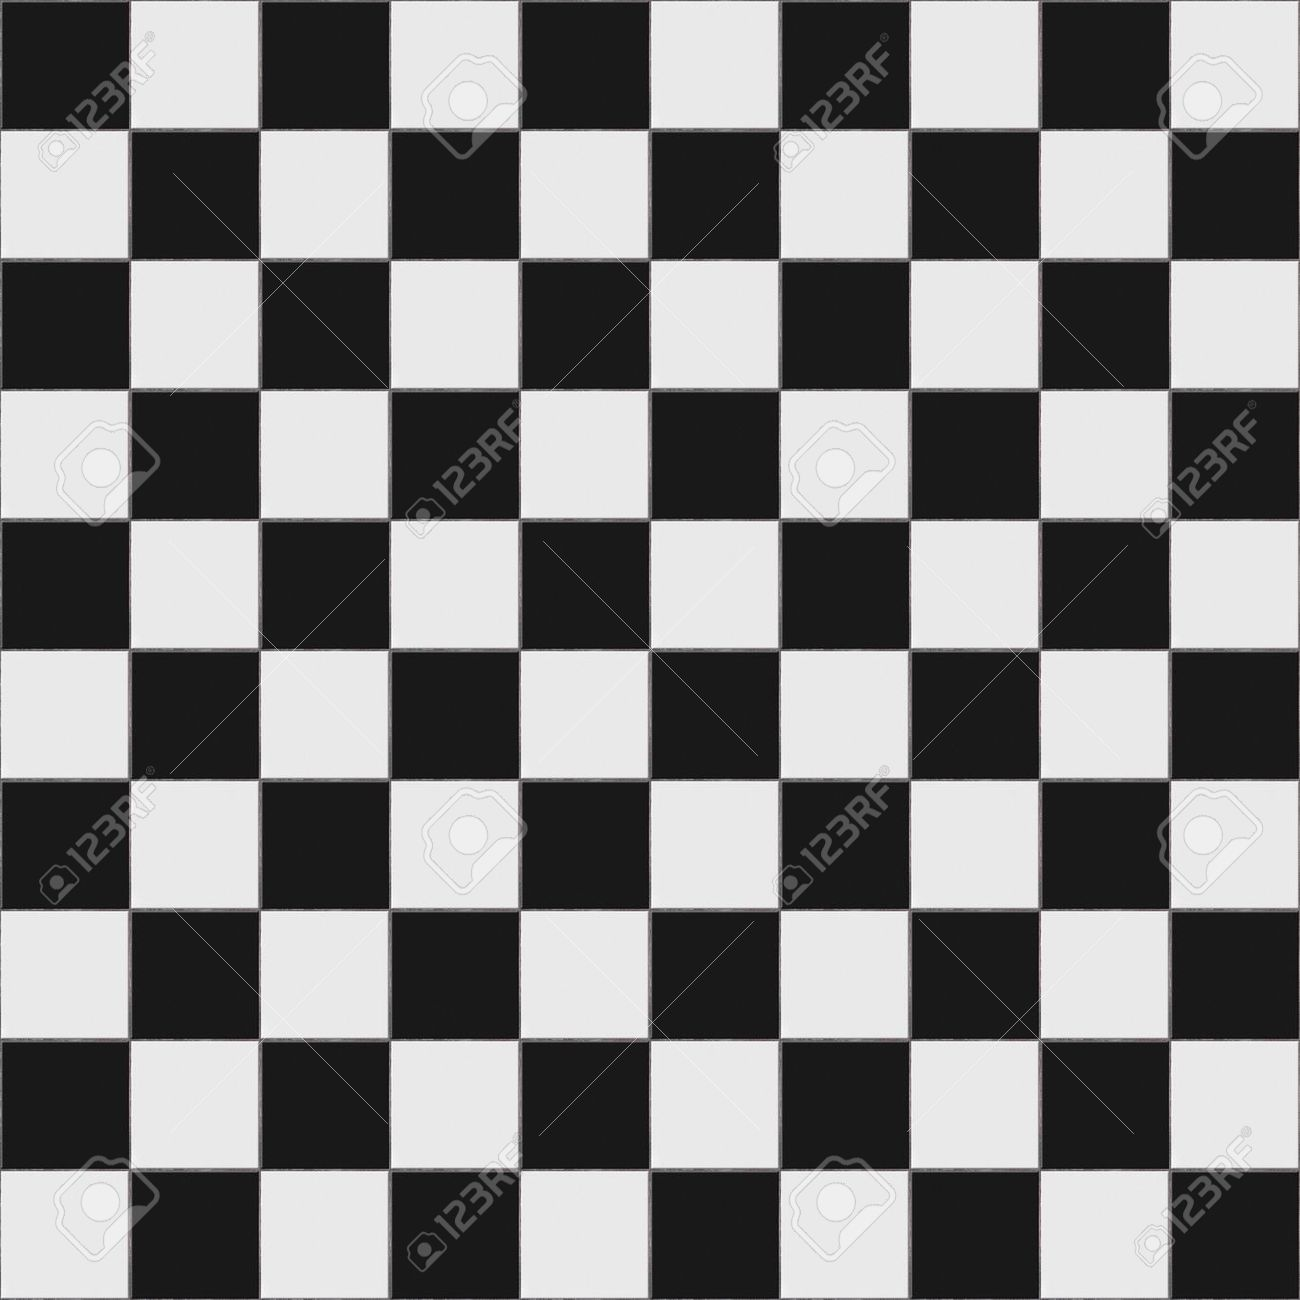 Seamless black and white checkered texture stock images image - Black And White Checkered Floor Tiles With Texture This Tiles Seamlessly As A Pattern